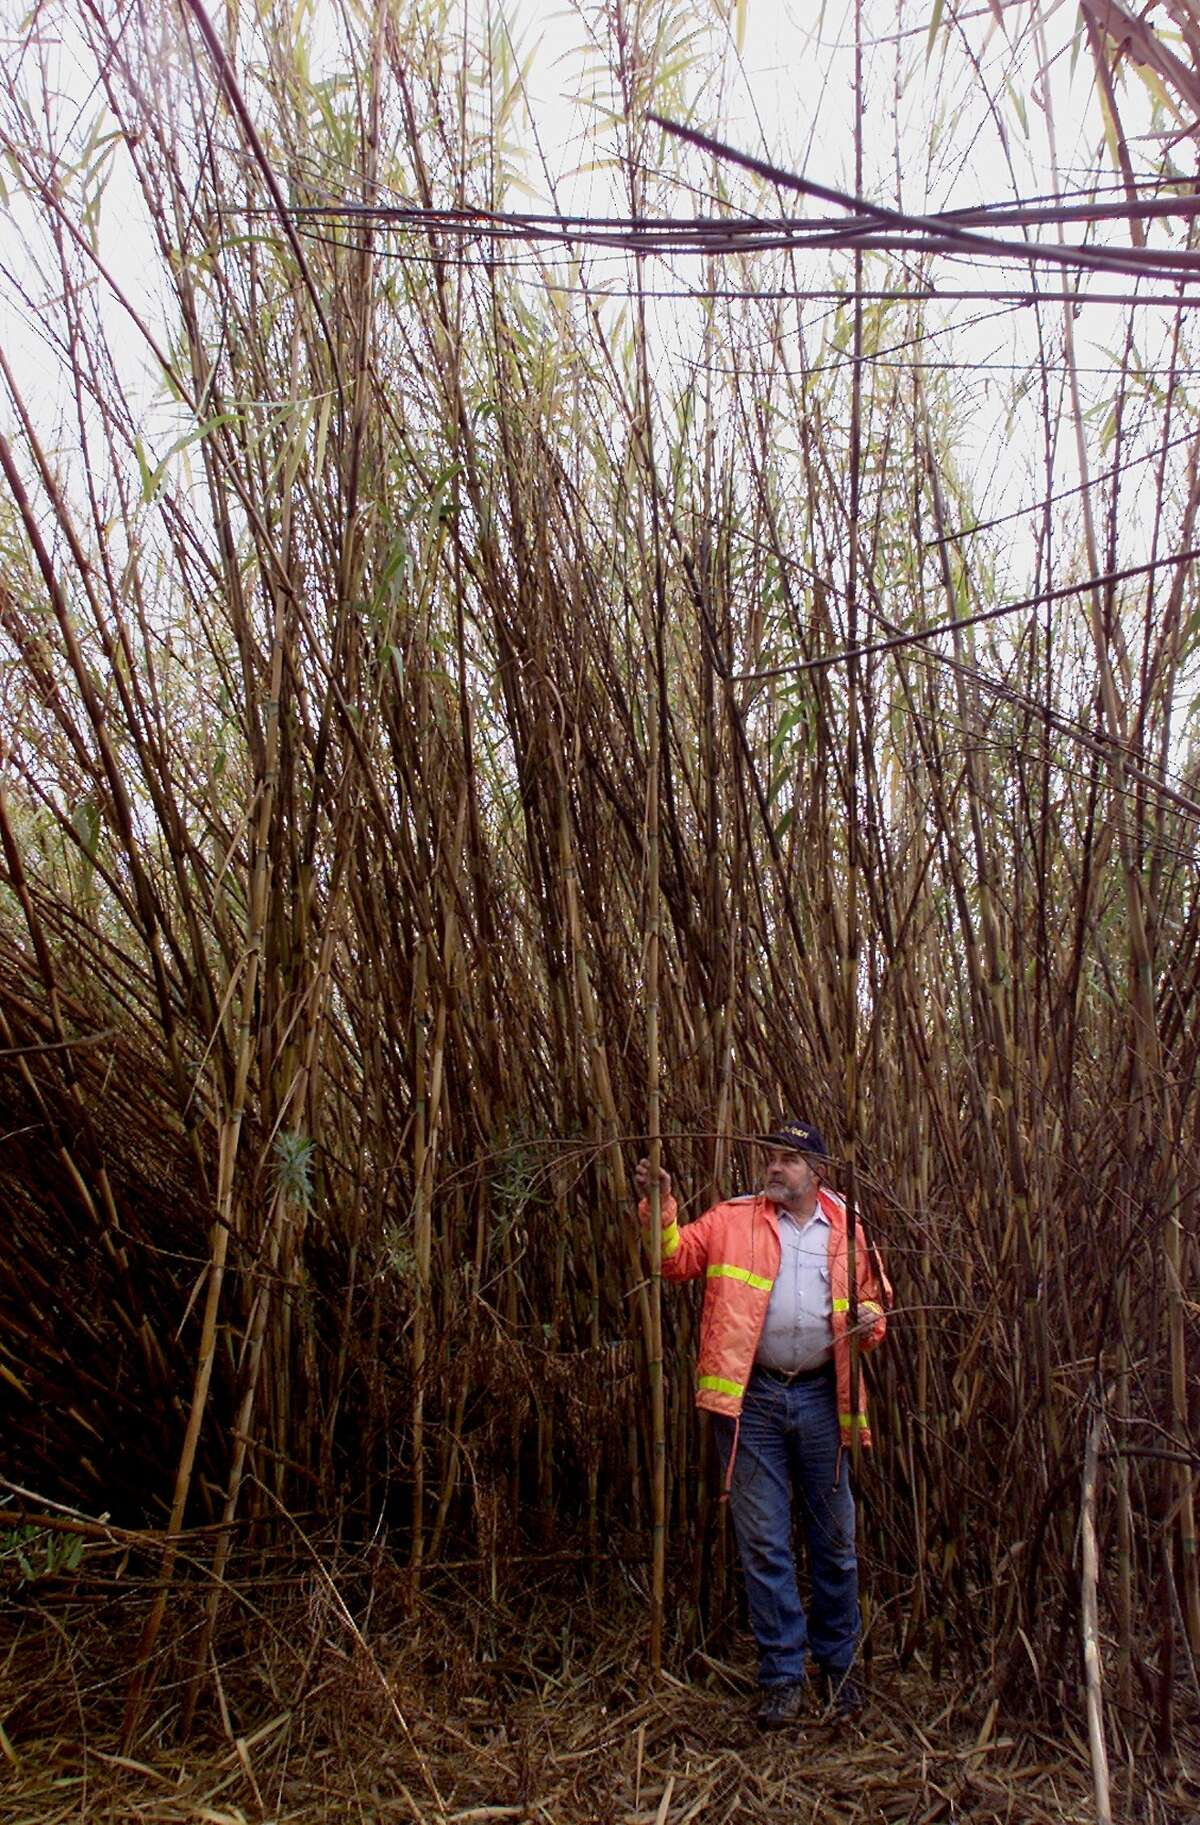 Arundo donax, also known as giant reed, can grow as high as 30 feet in dense stands.